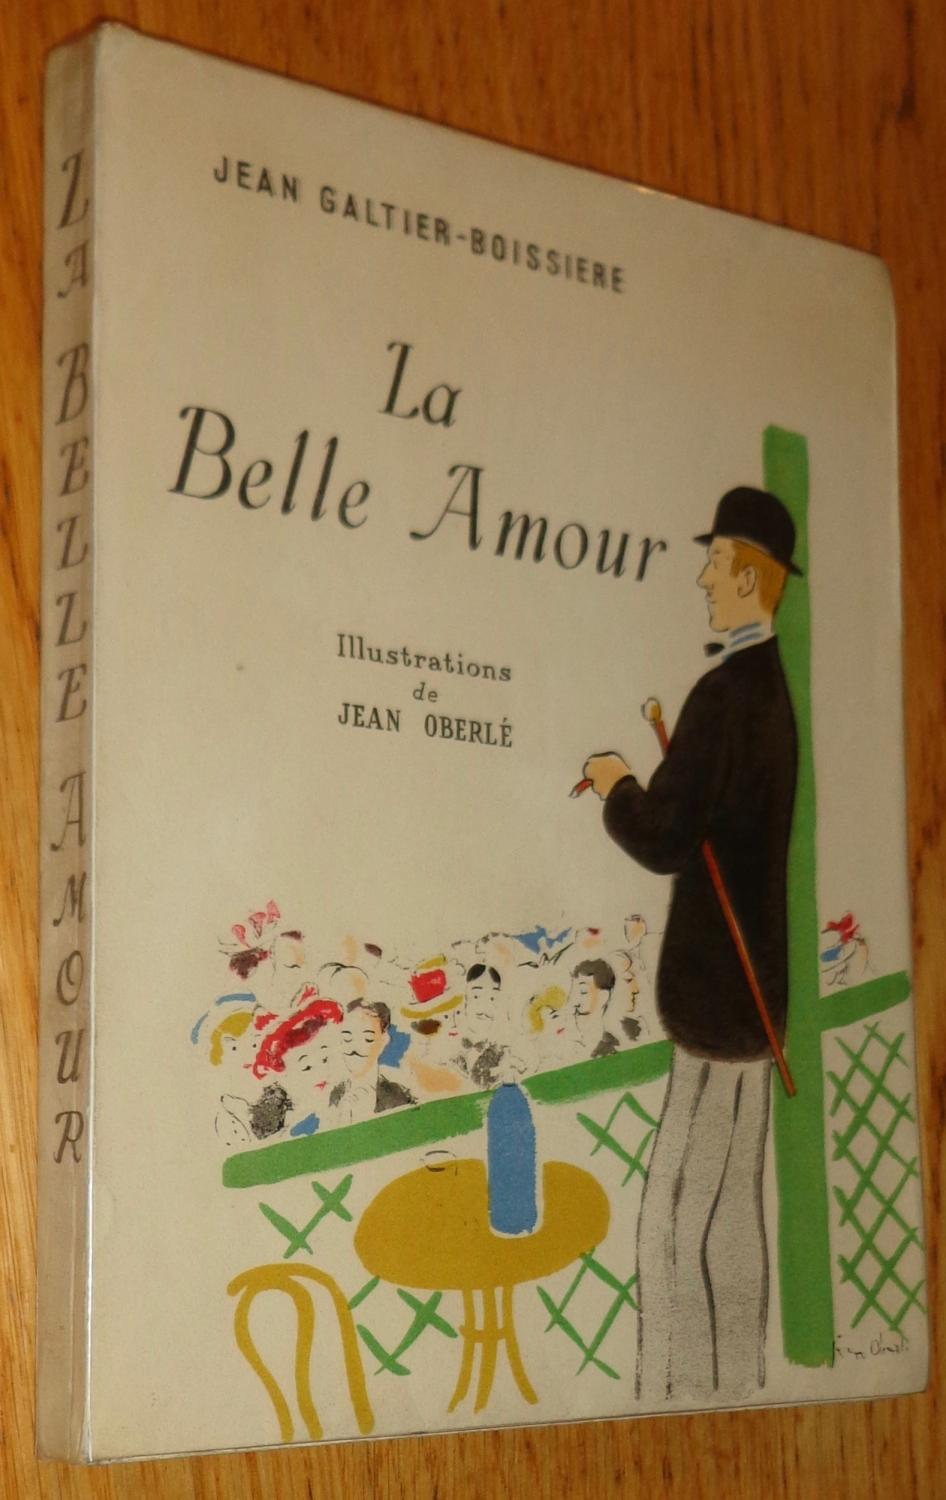 La Belle Amour Illustrations De Jean Oberlé